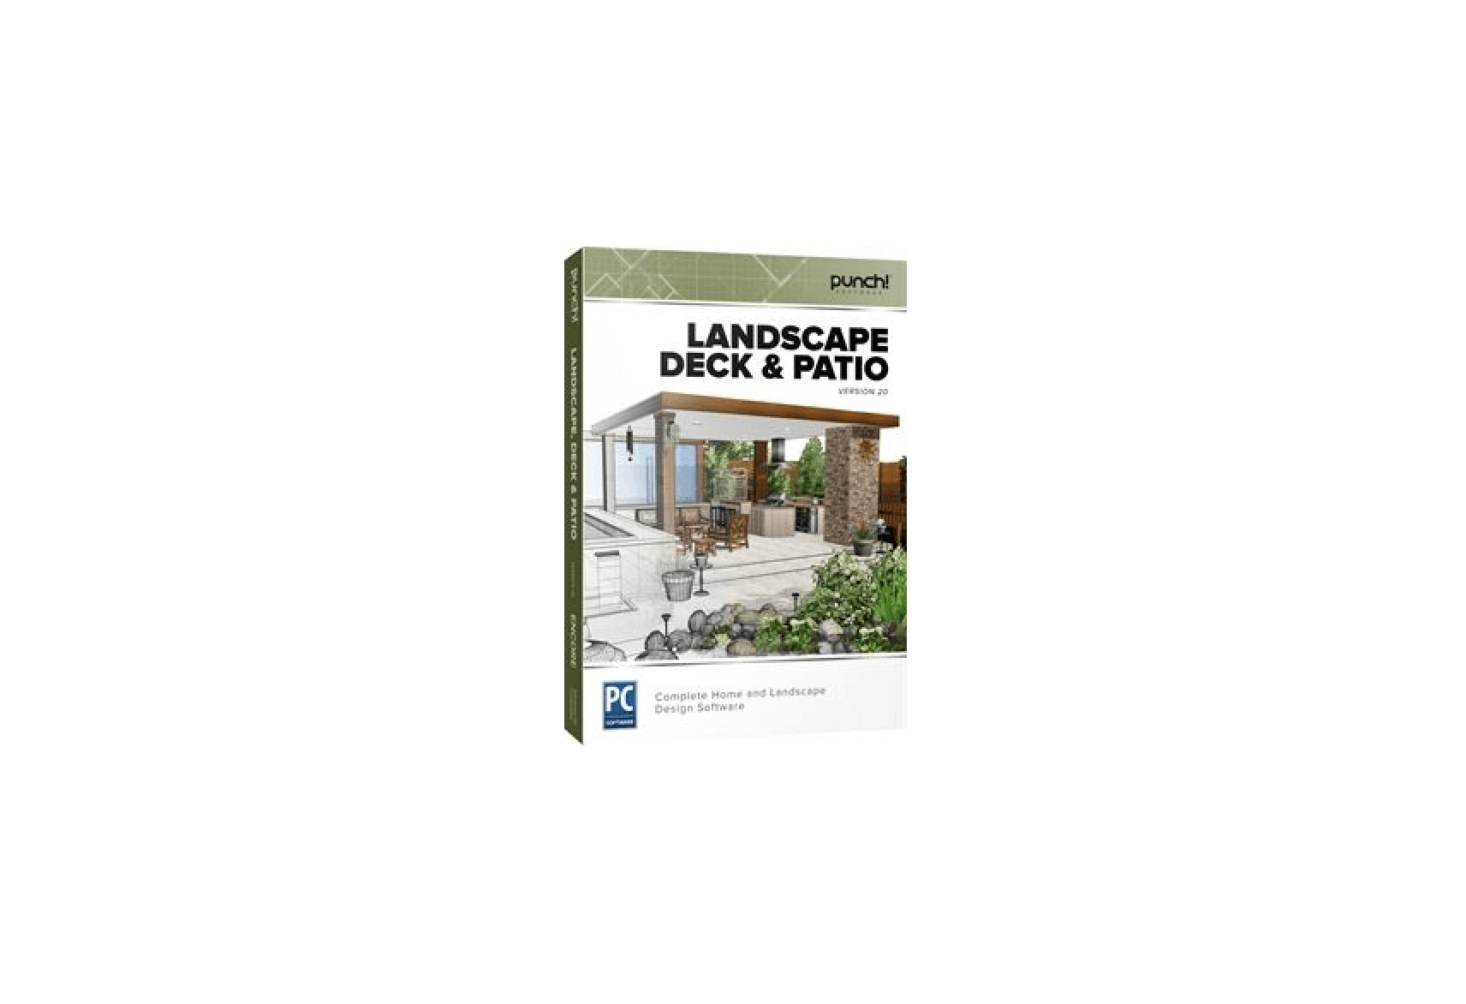 Landscape Deck & Patio is $39.99 from Punch. - 10 Best Landscape Design Software Programs Of 2018 - Gardenista